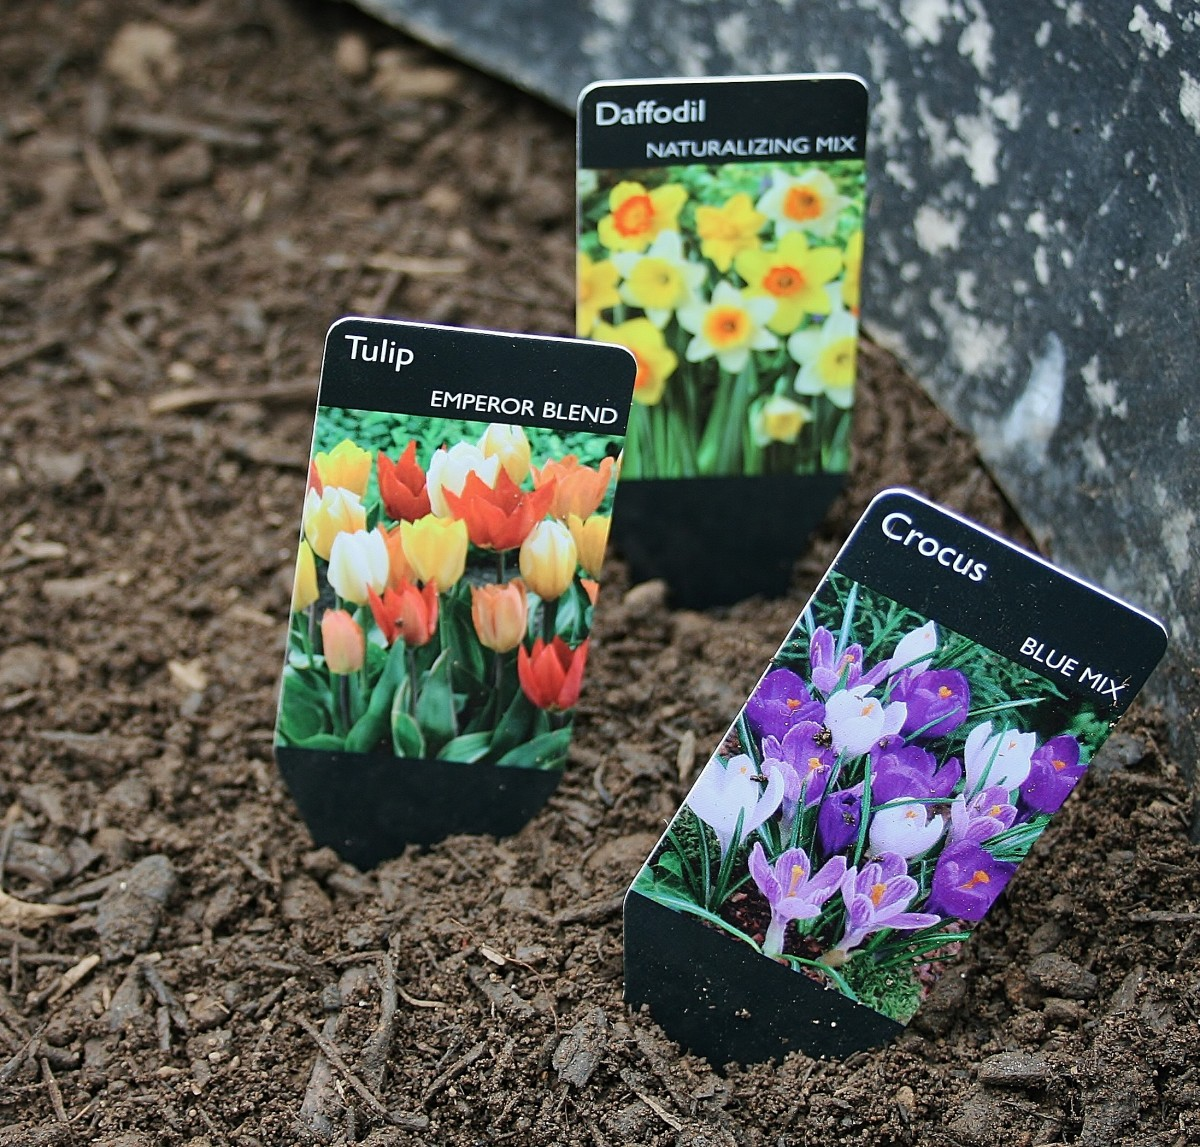 This year I chose crocus, tulips and daffodils for our container bulb garden.